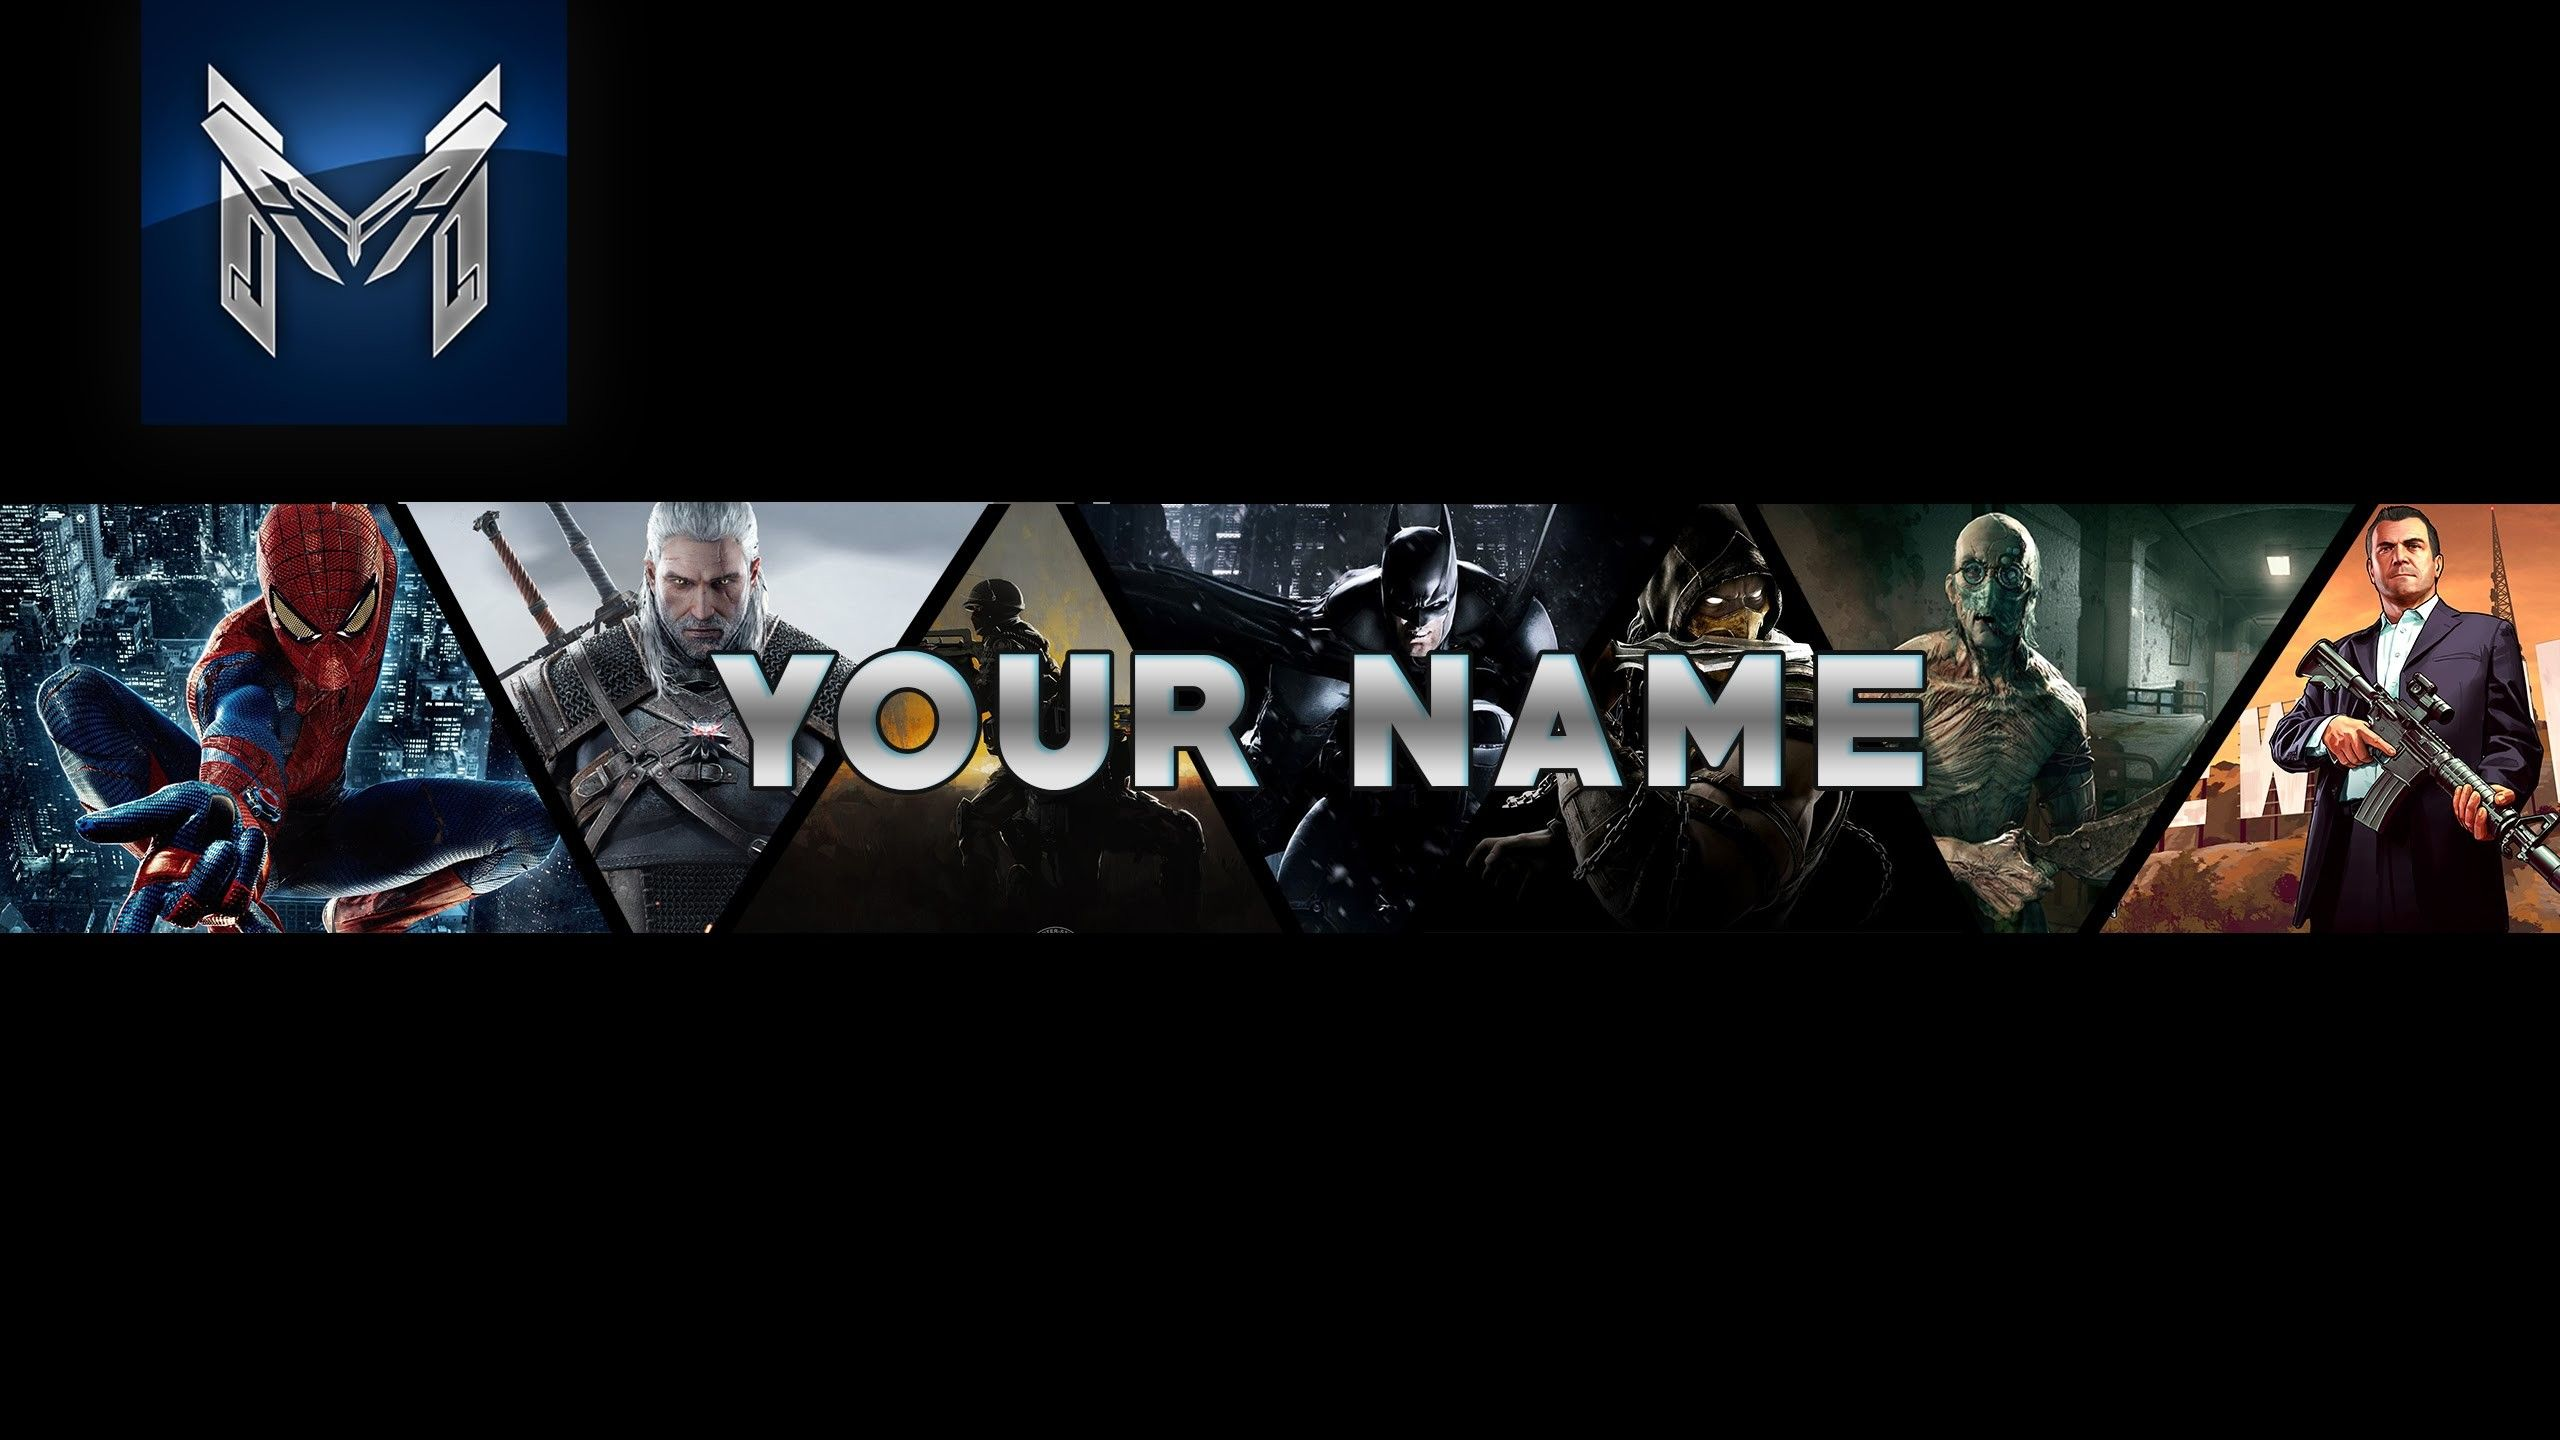 Free] youtube banner template psd 2014 clean design 1920x1080. Free Fire Gaming Channel Art 2048x1152